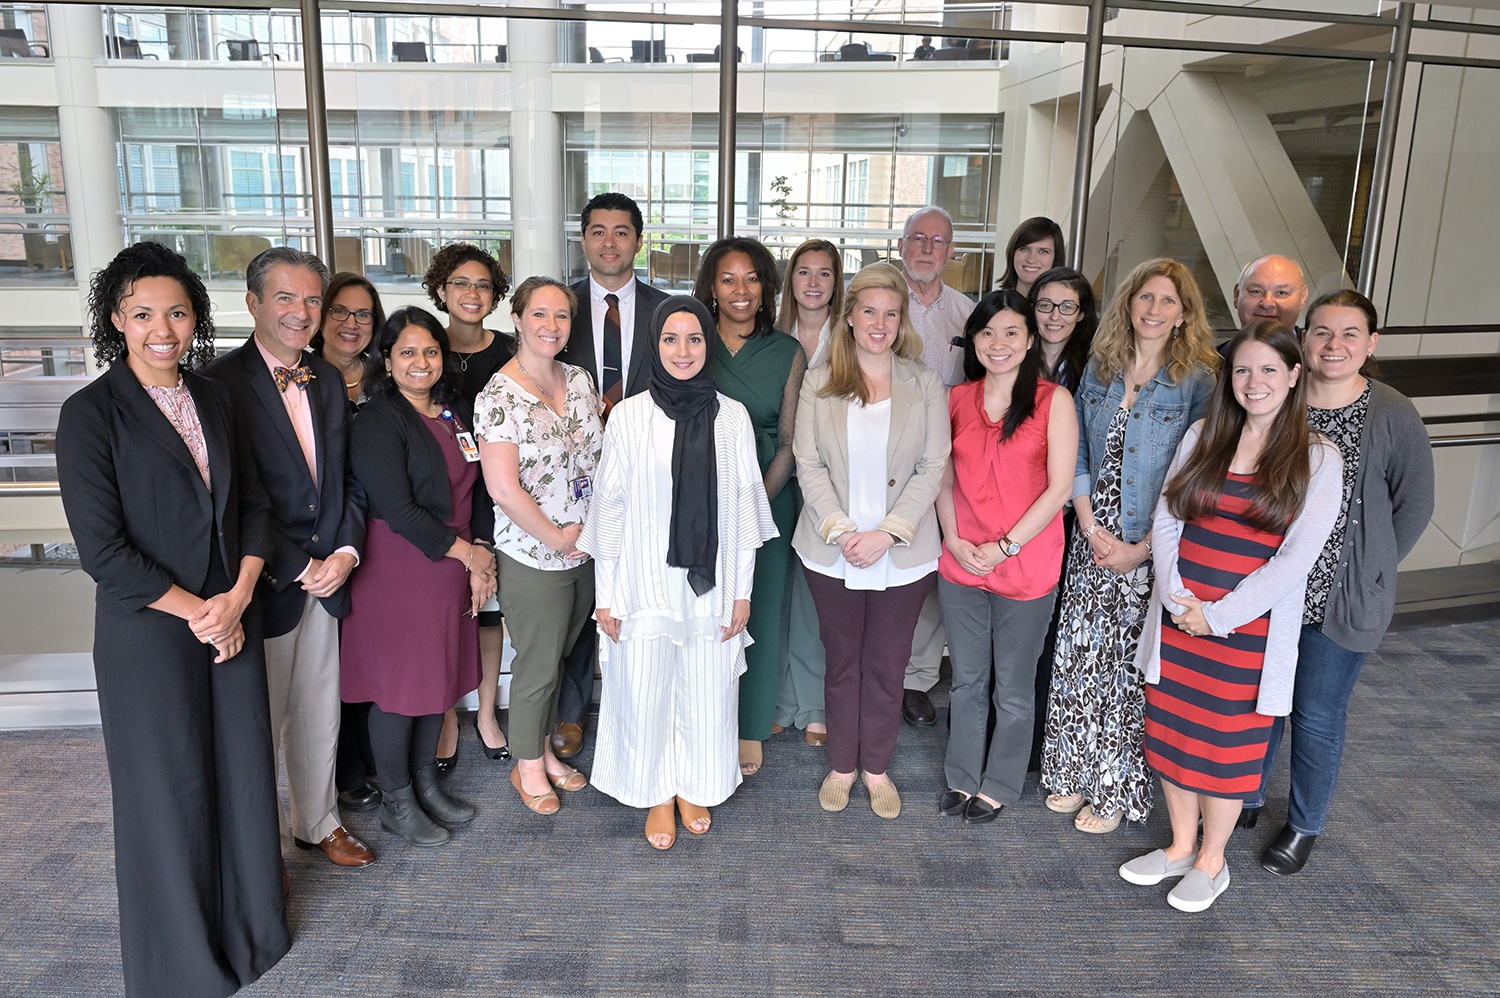 Fellows and faculty group photo in the Clinical Center atrium